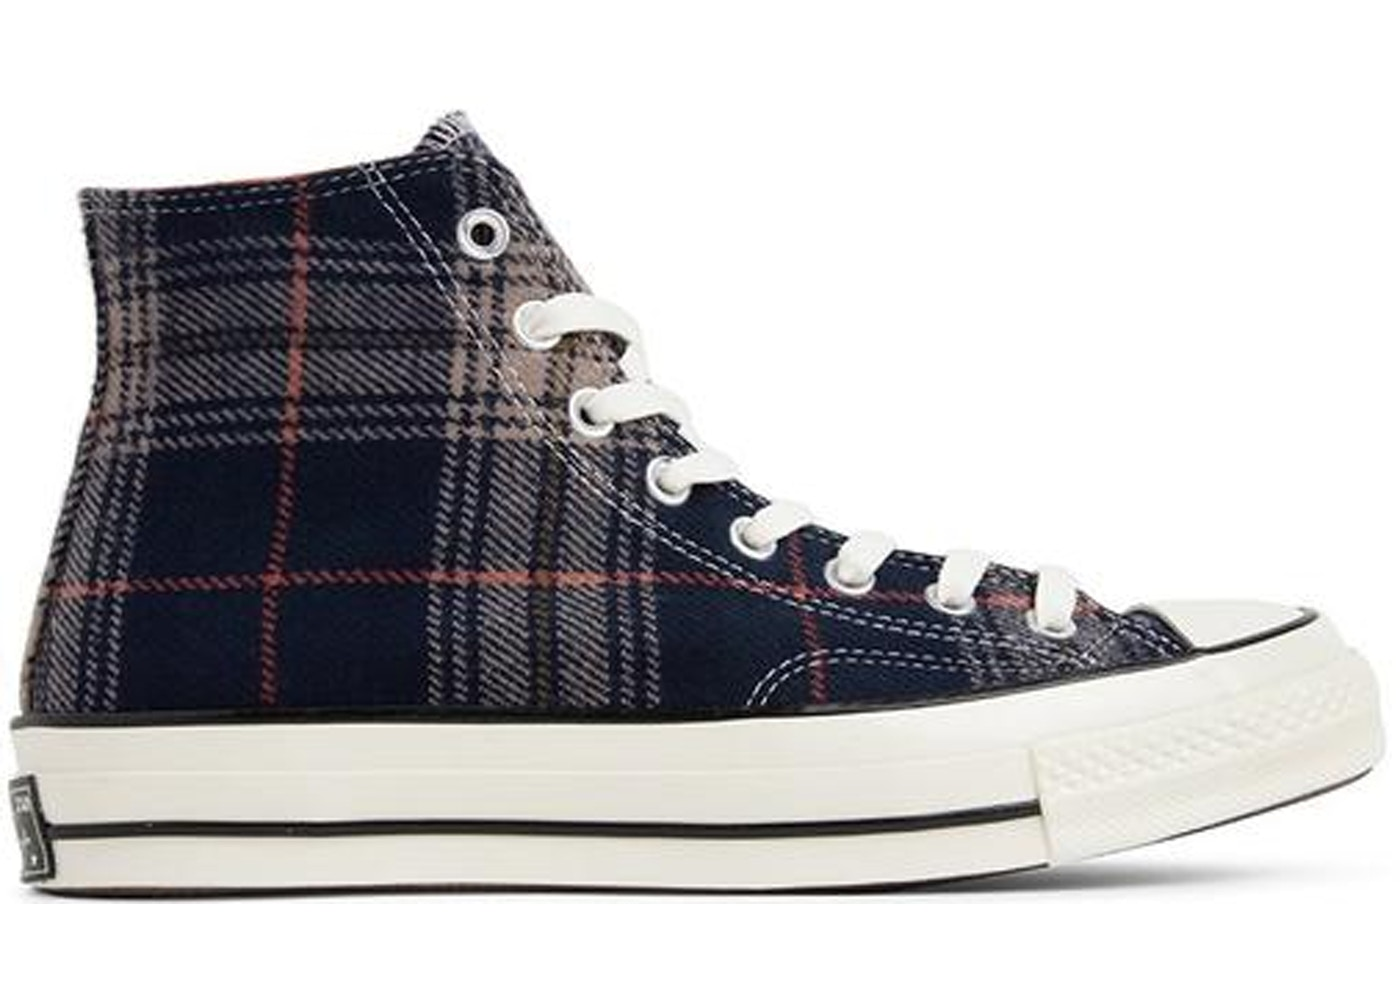 Converse Chuck Taylor All Star 70s Hi Plaid Pack Navy by Stock X